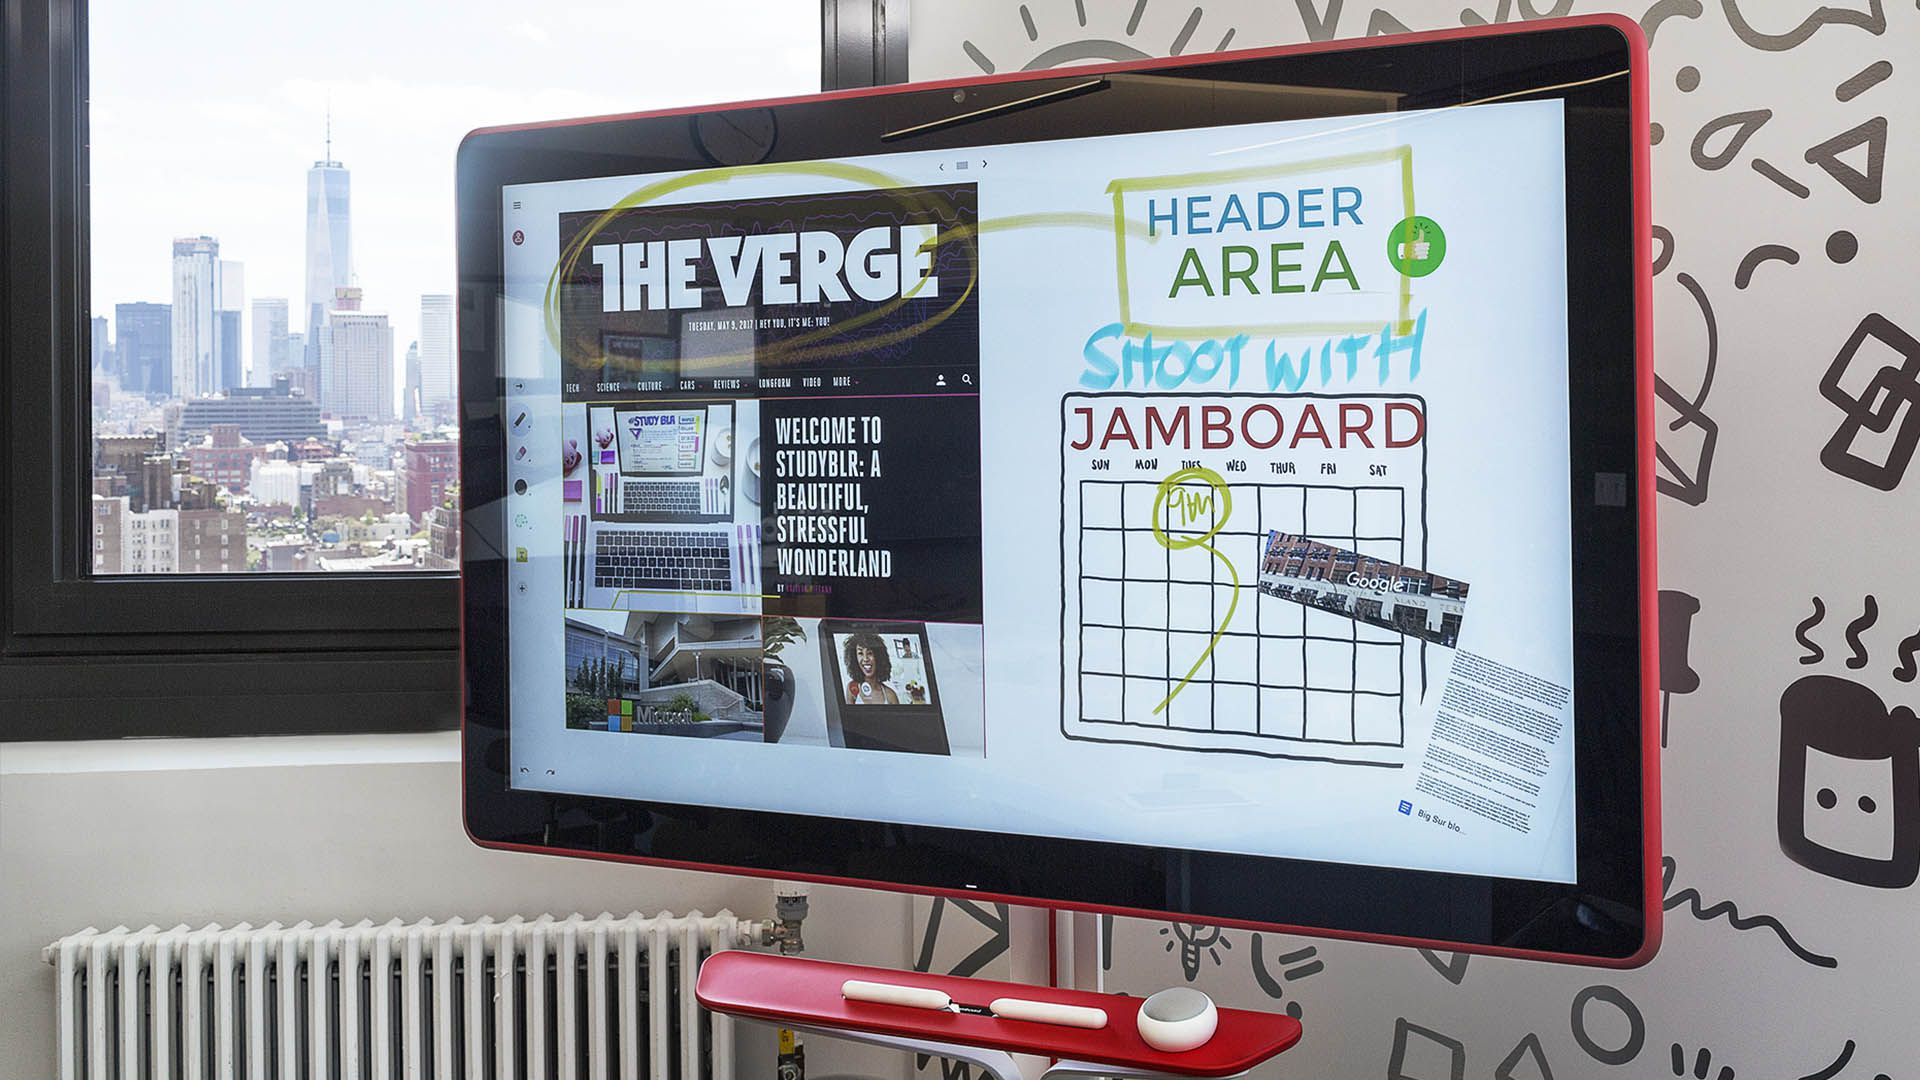 Google made a $5,000 whiteboard — and it's weirdly fun - The Verge